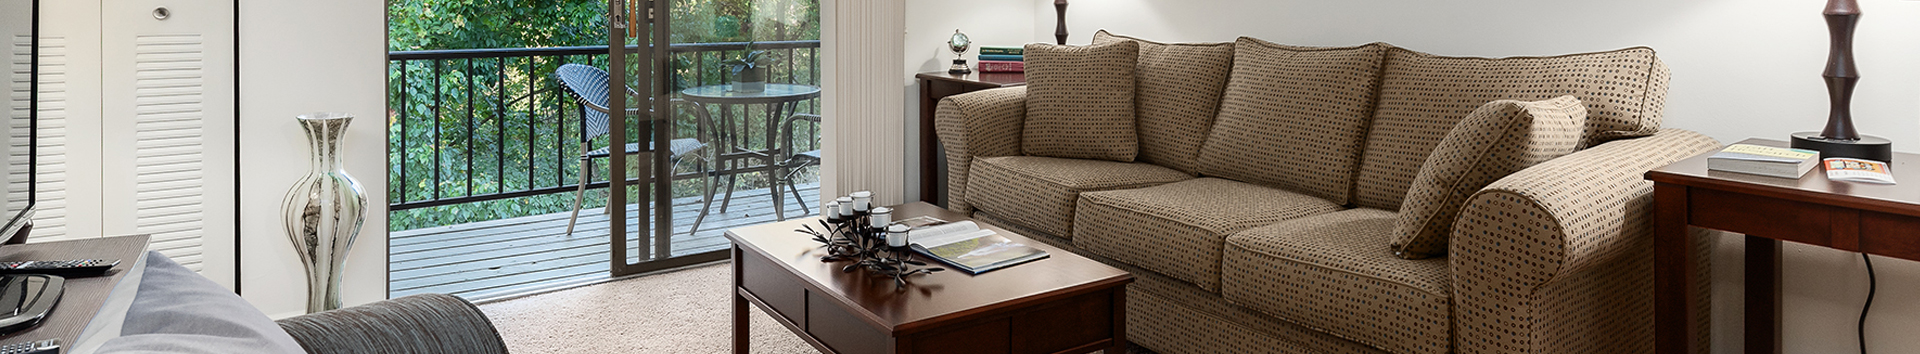 Interior of Furnished Apartments at Manor Communities, Lancaster/Pennsylvania